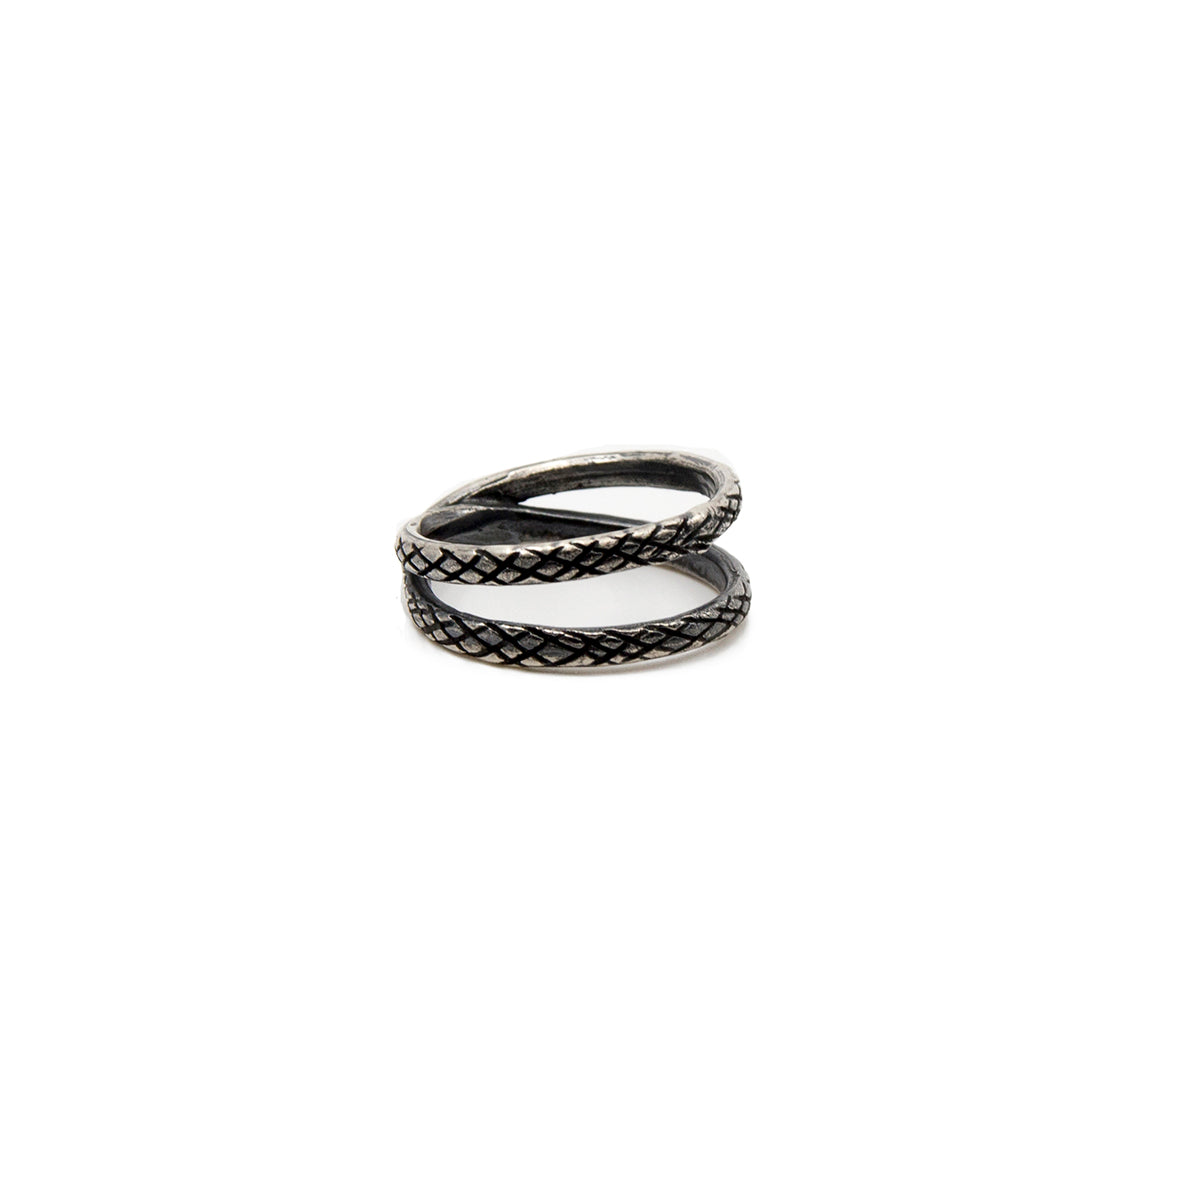 Cross Ring Oxidized Snake Pattern Sterling Silver